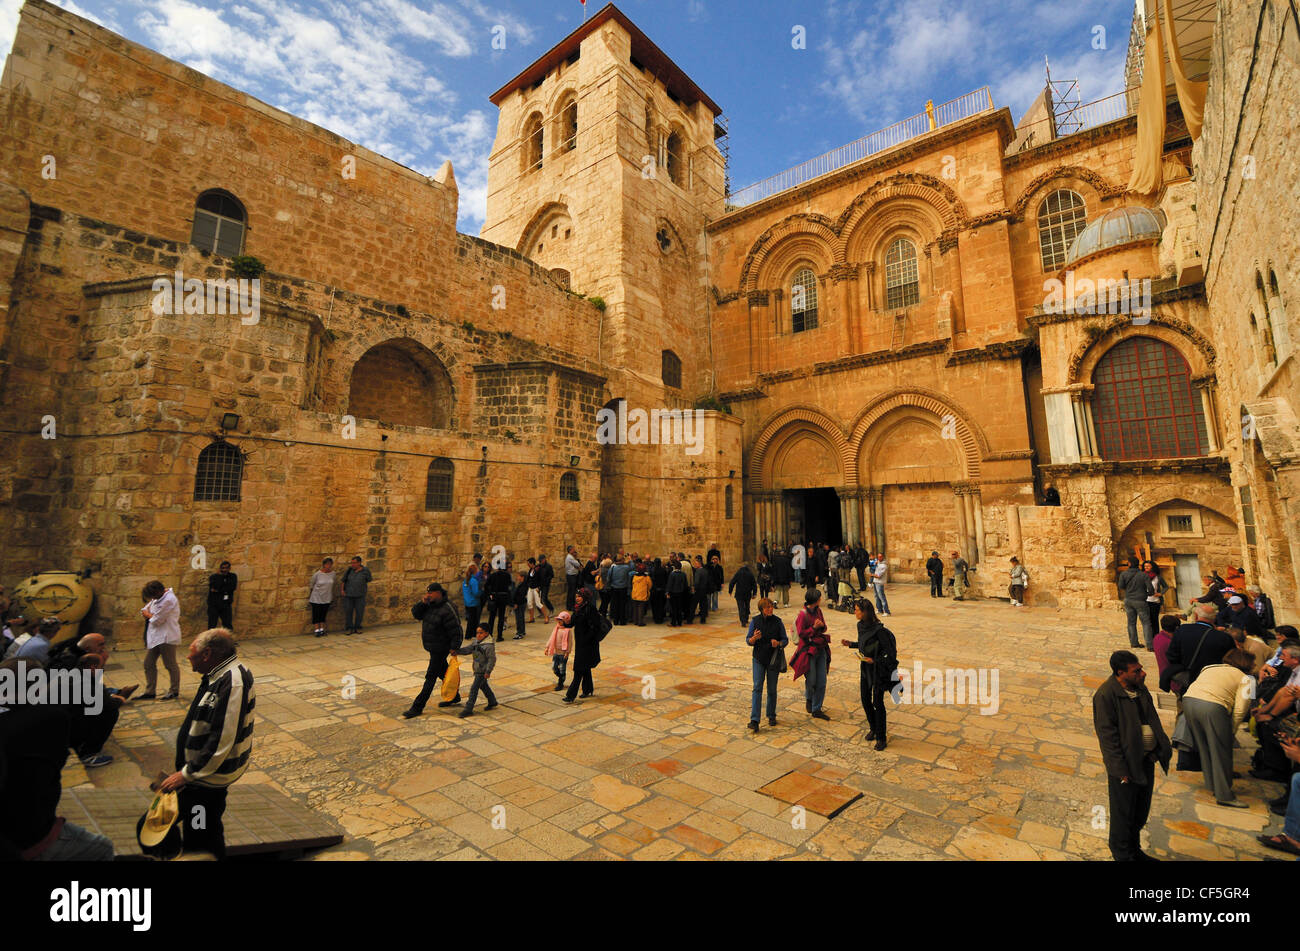 Church of the holy Sepulchre in Jerusalem, Israel - Stock Image